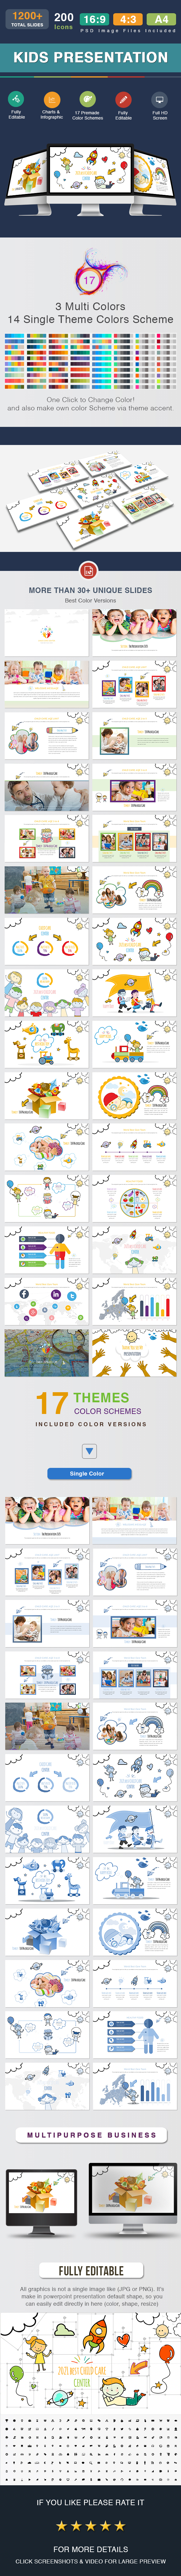 kids Presentation Template - Creative PowerPoint Templates